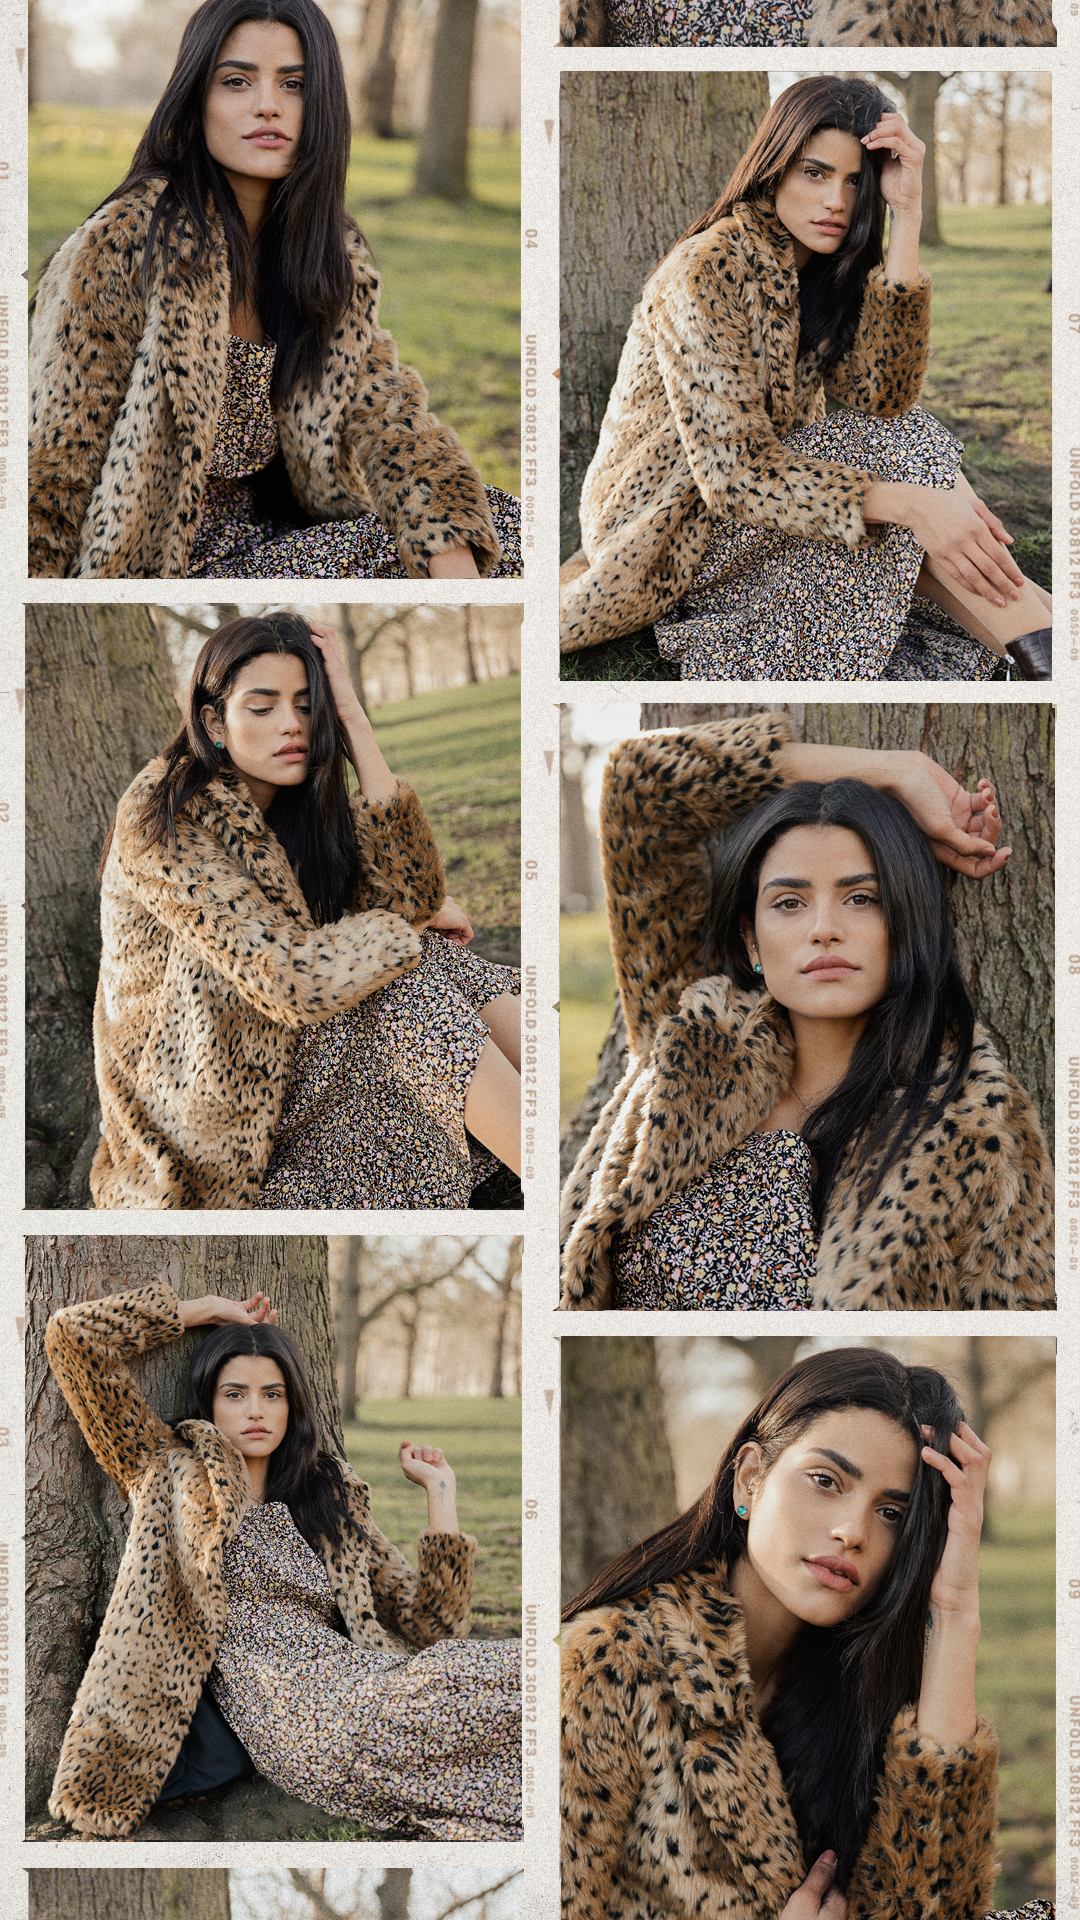 collage of a girl with black hair in leopard print coat sitting in a park taken by London based fashion and portraits photographer Ailera Stone